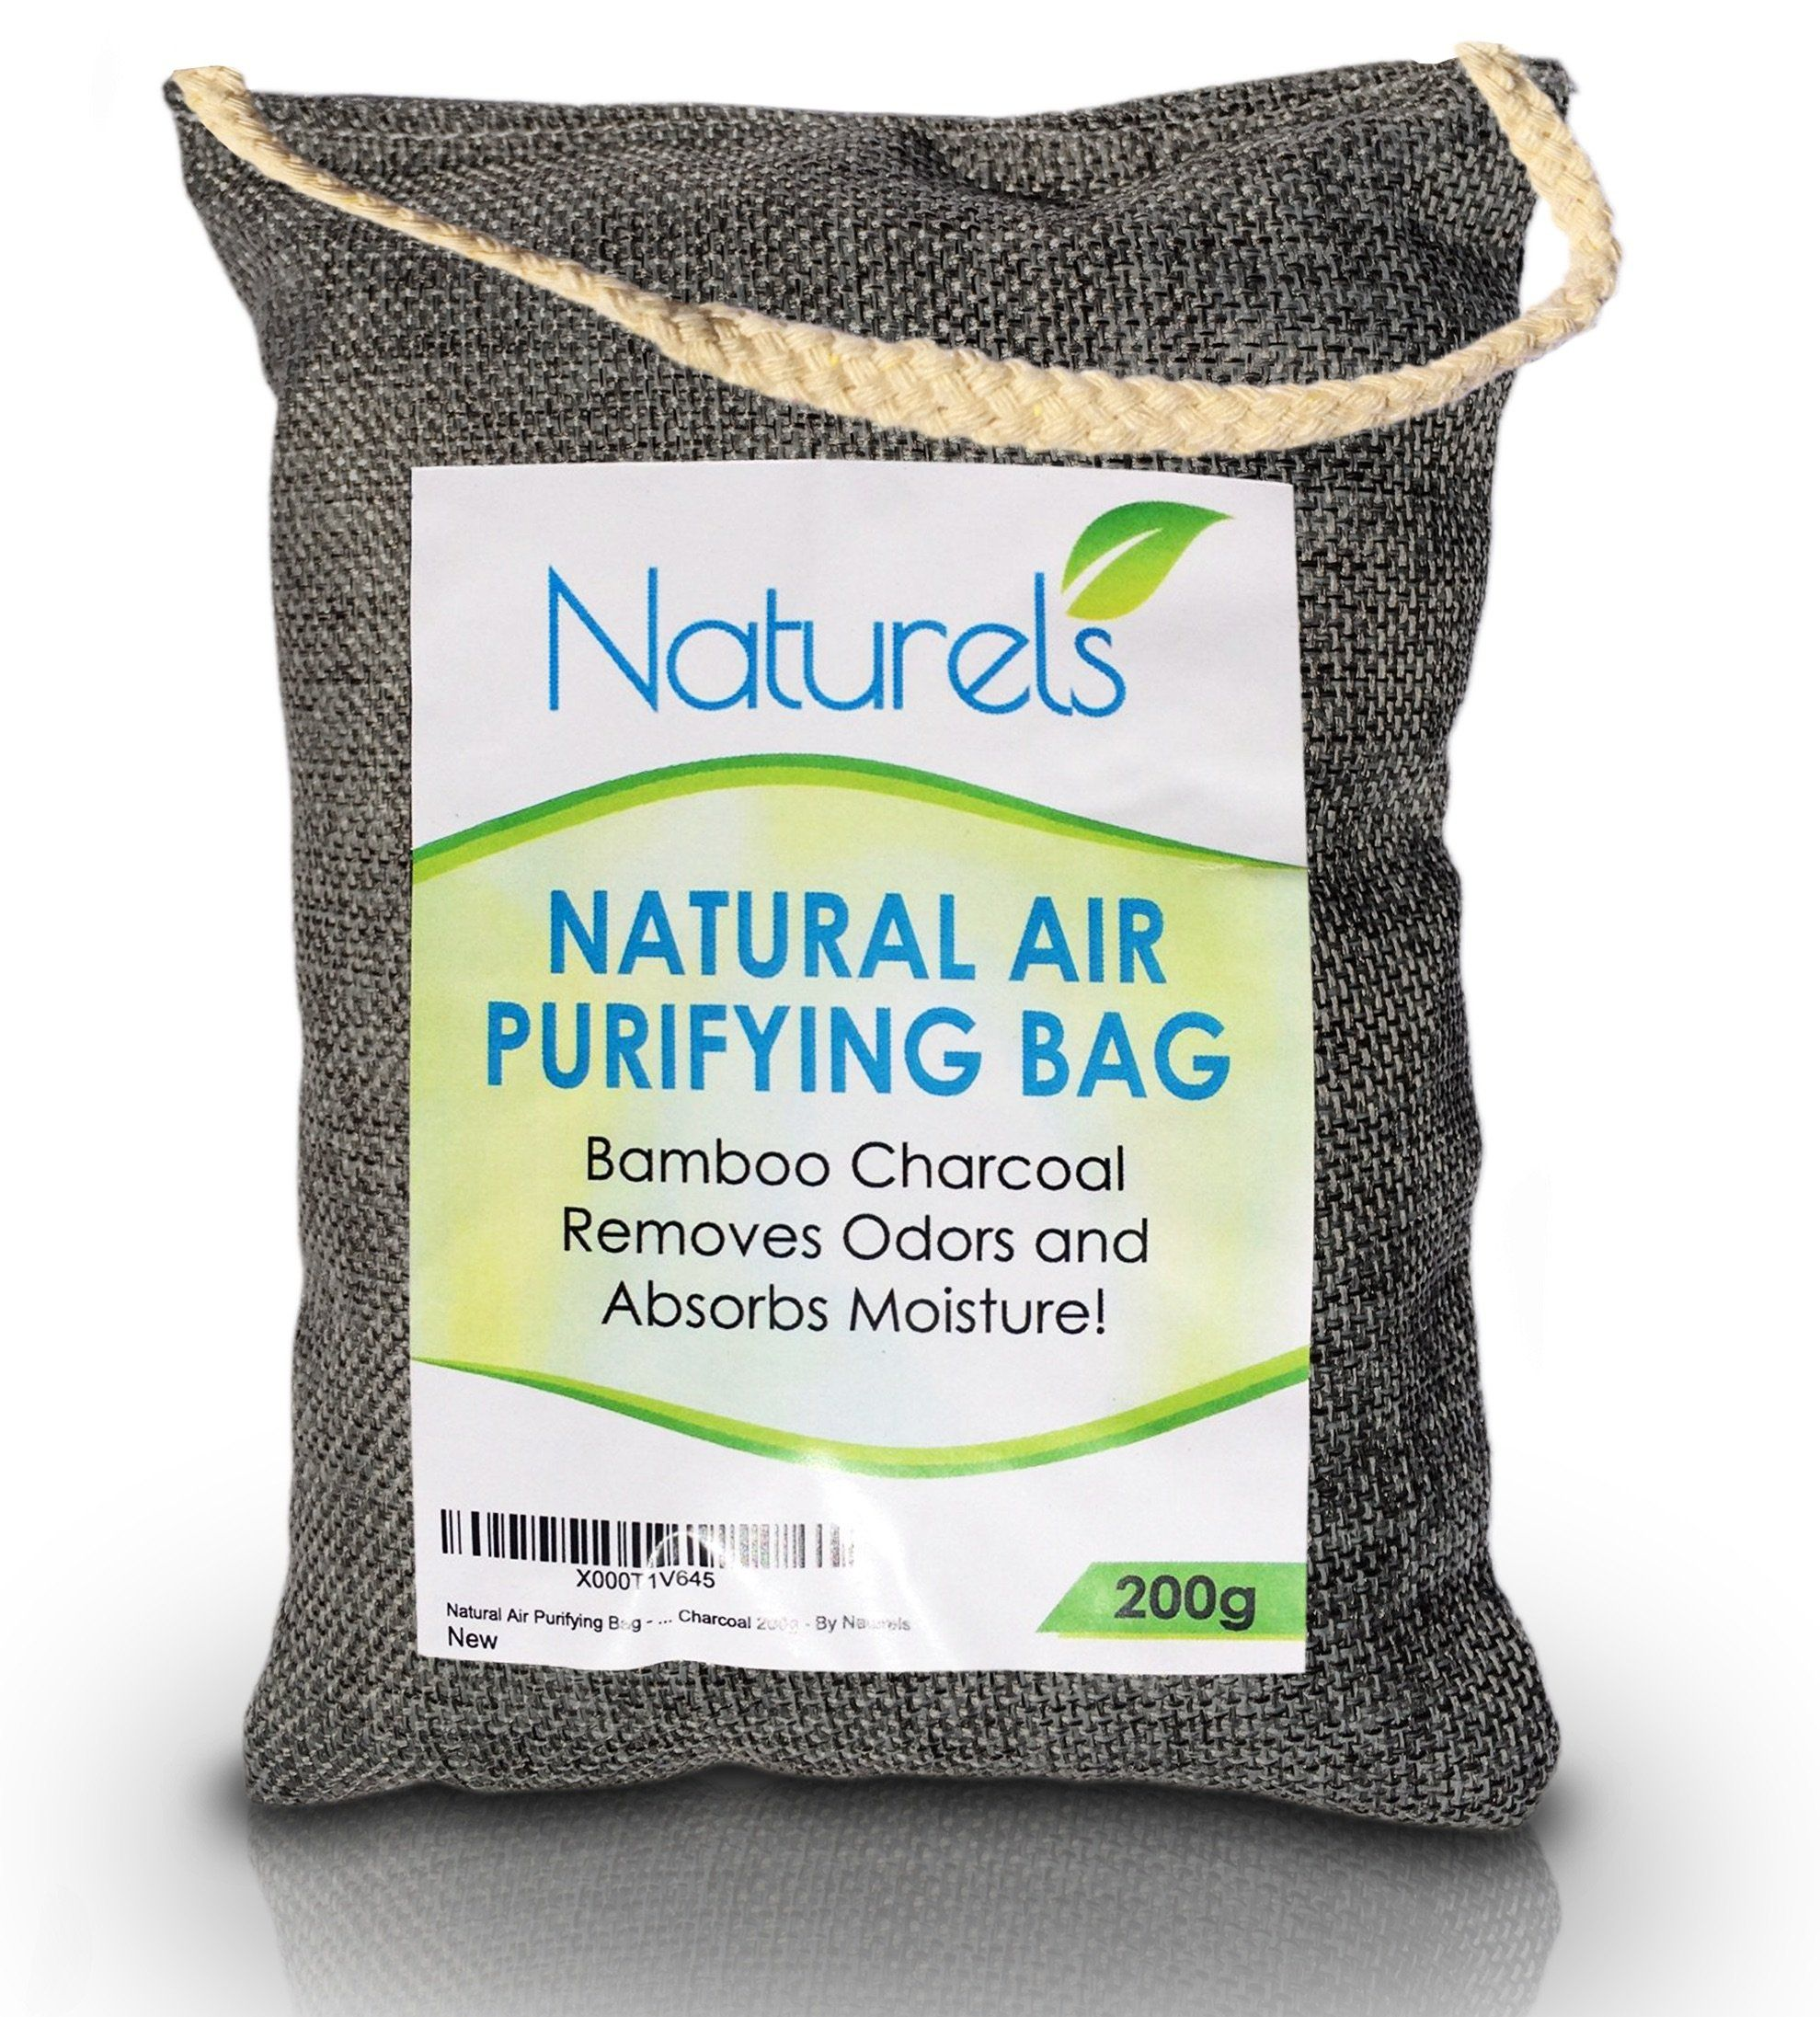 Natural Air Purifying Bag Bamboo Charcoal Naturally